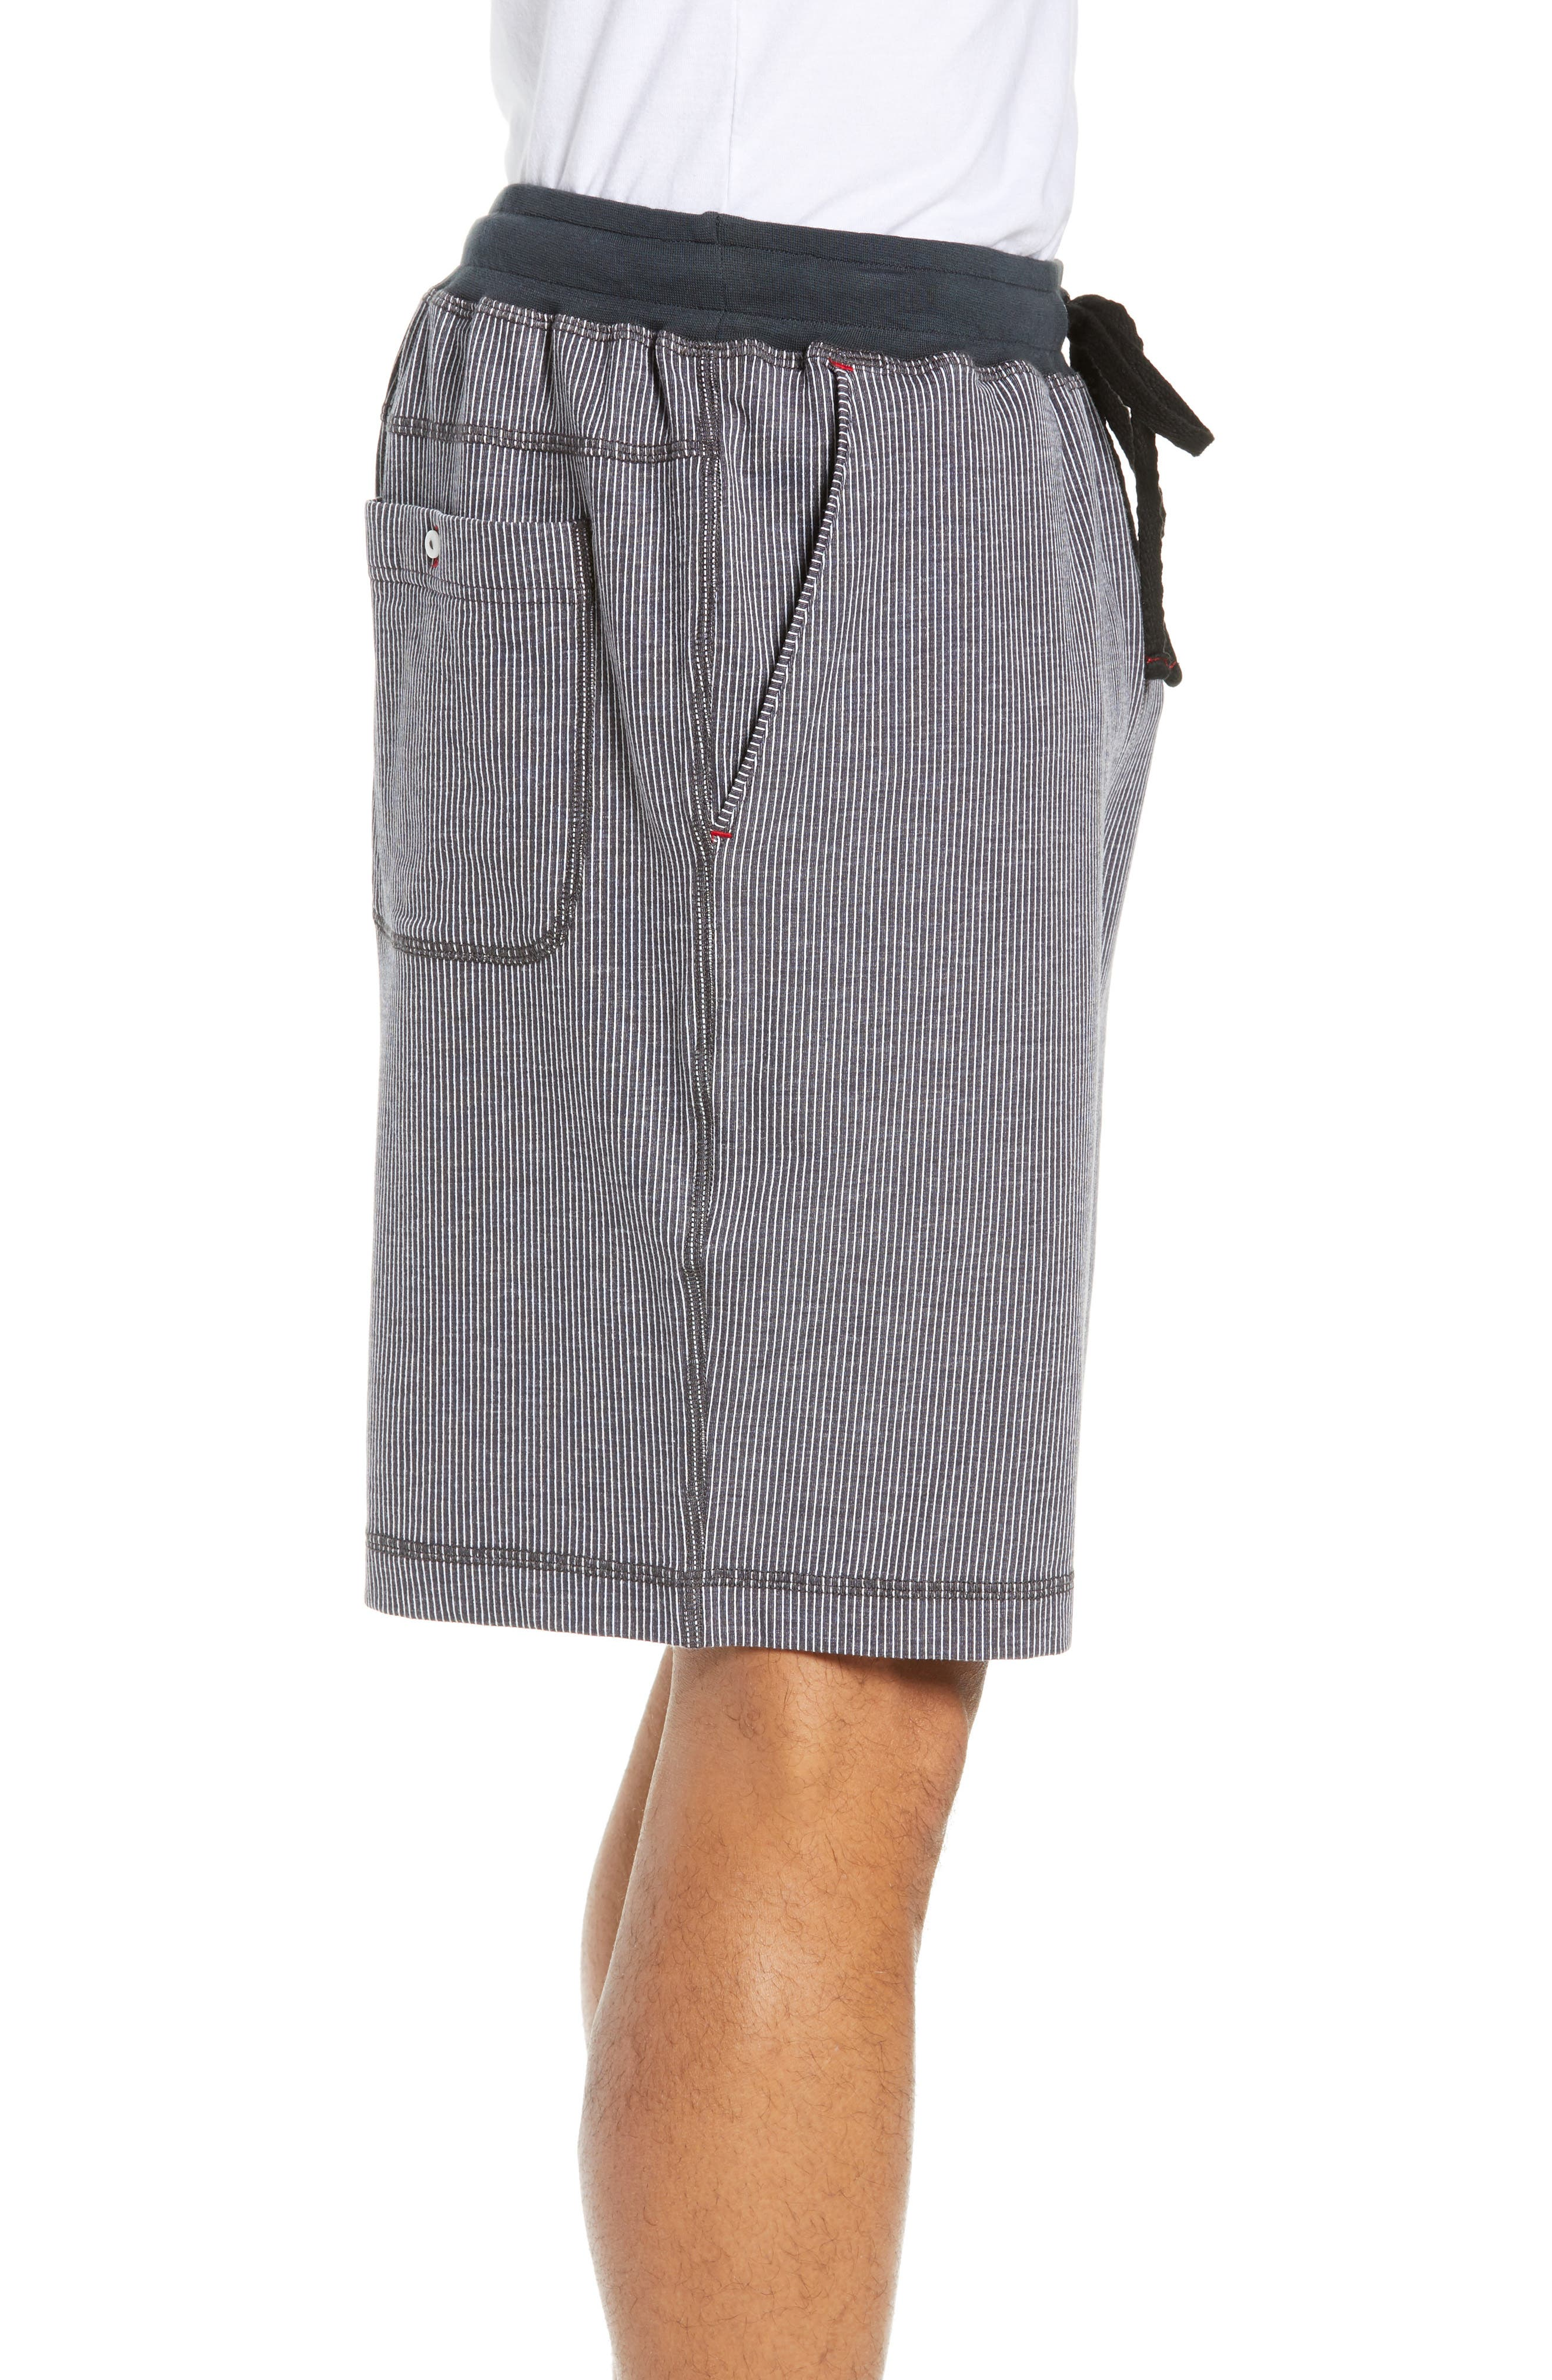 Pinstripe Shorts,                             Alternate thumbnail 3, color,                             CHARCOAL